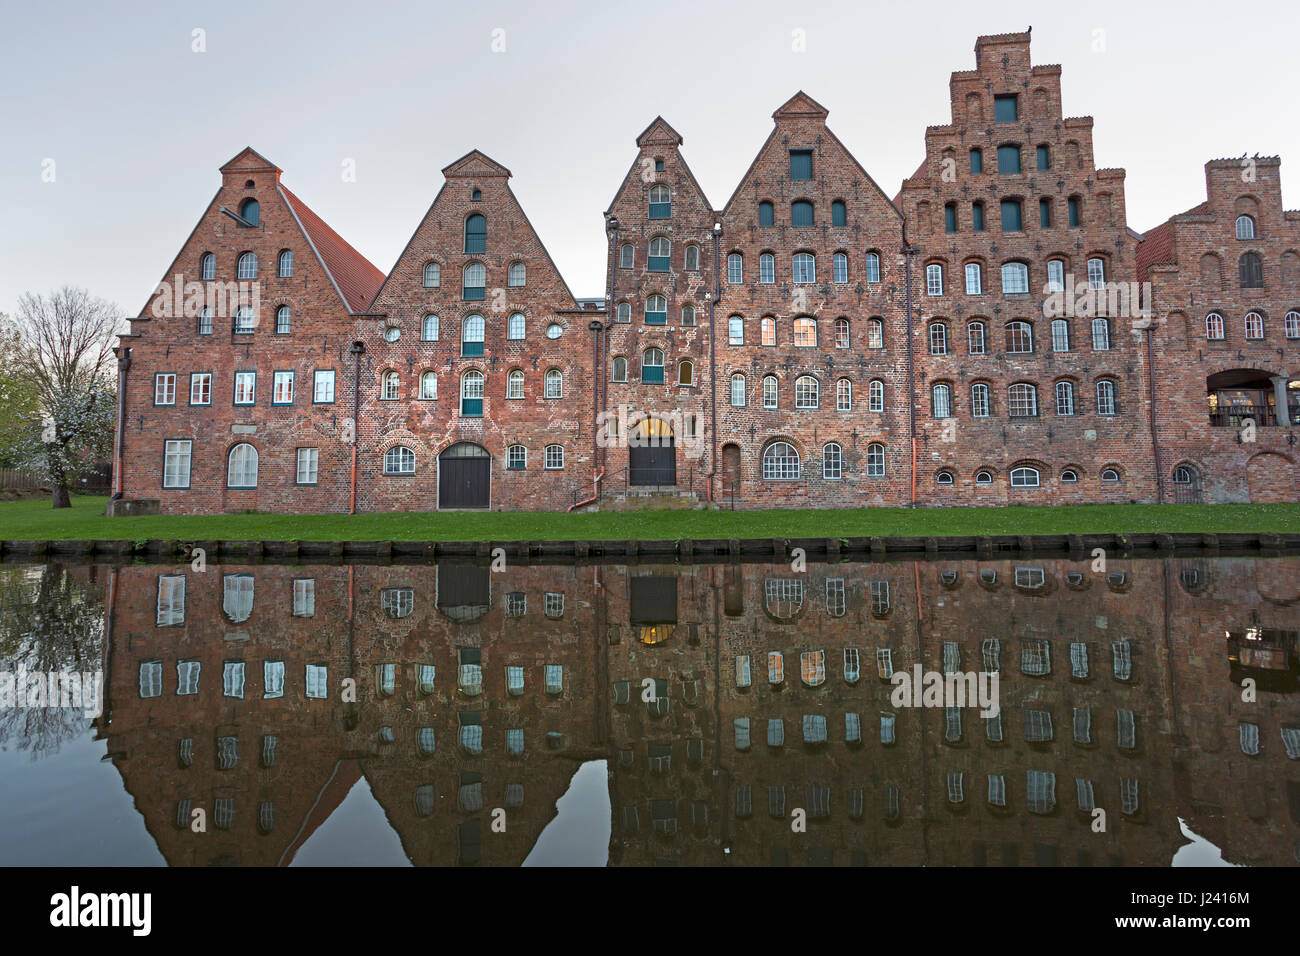 Store of salt at Trave, Lübeck, Schleswig-Holstein, Germany, Europe - Stock Image